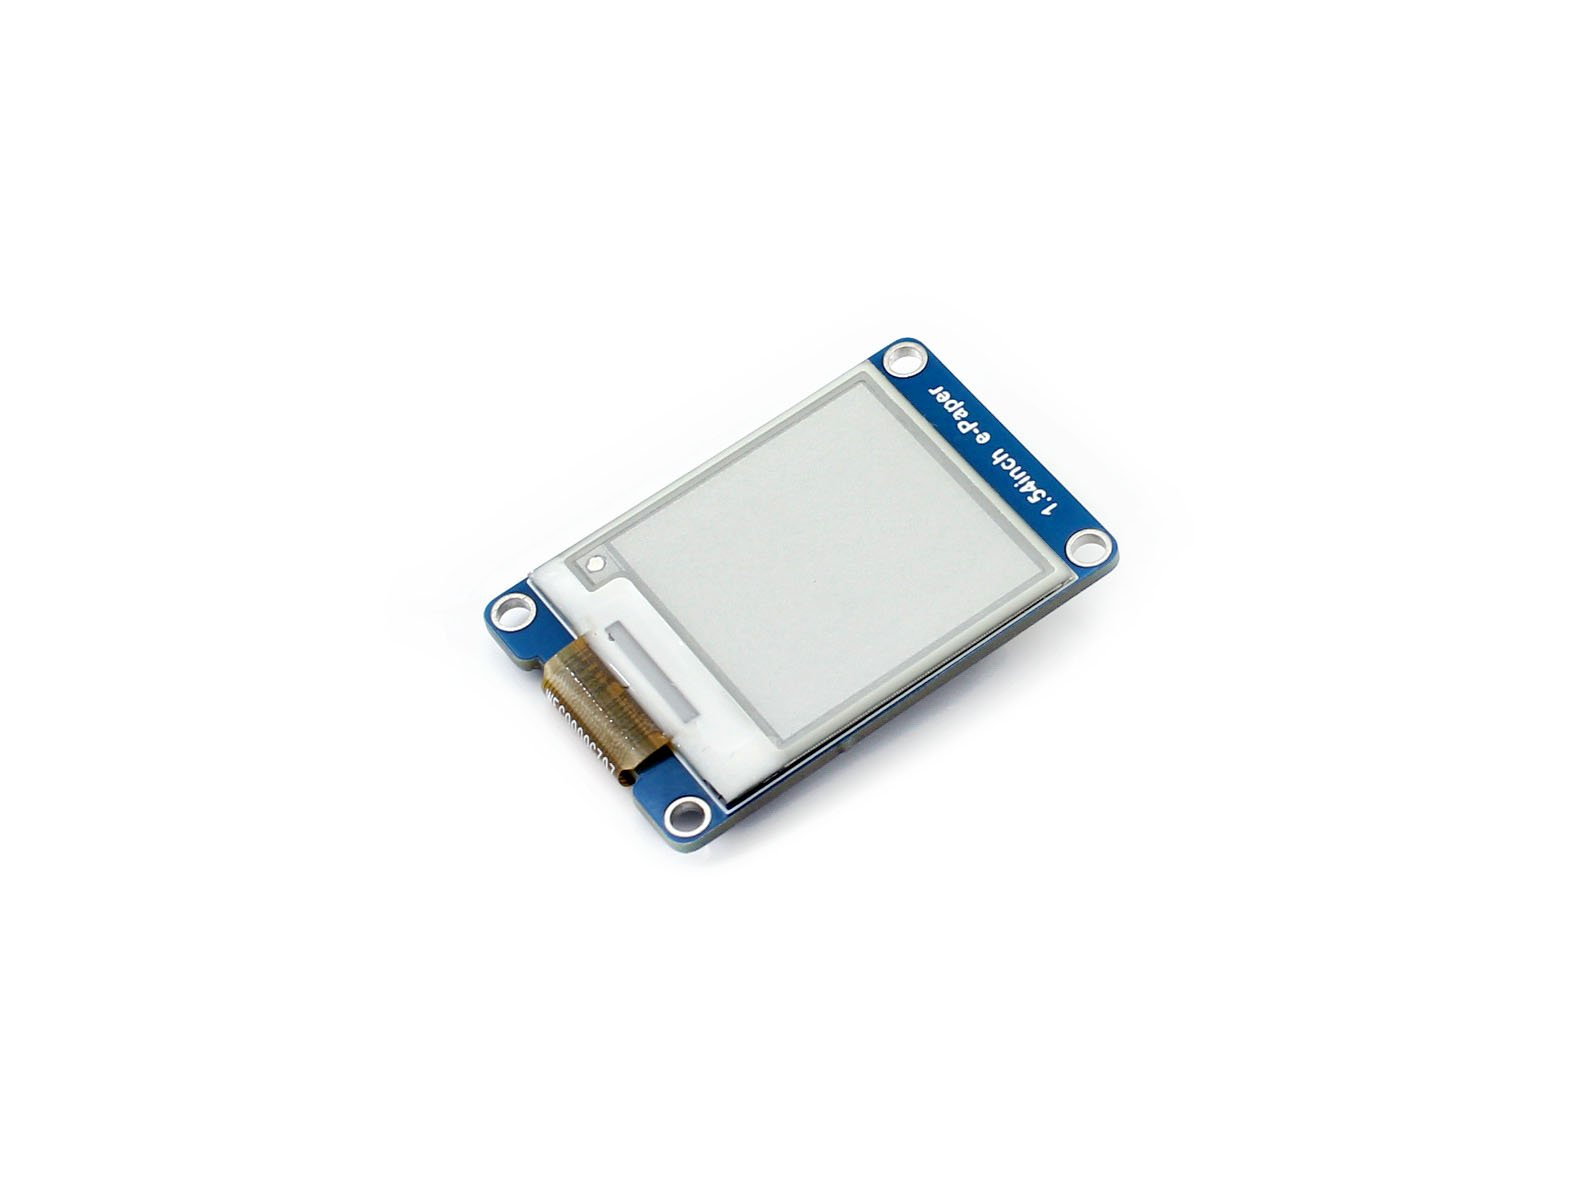 200x200, 1.54inch E-Ink display module,1.54inch e-Paper,SPI interface,Supports partial refresh by waveshare (Image #8)